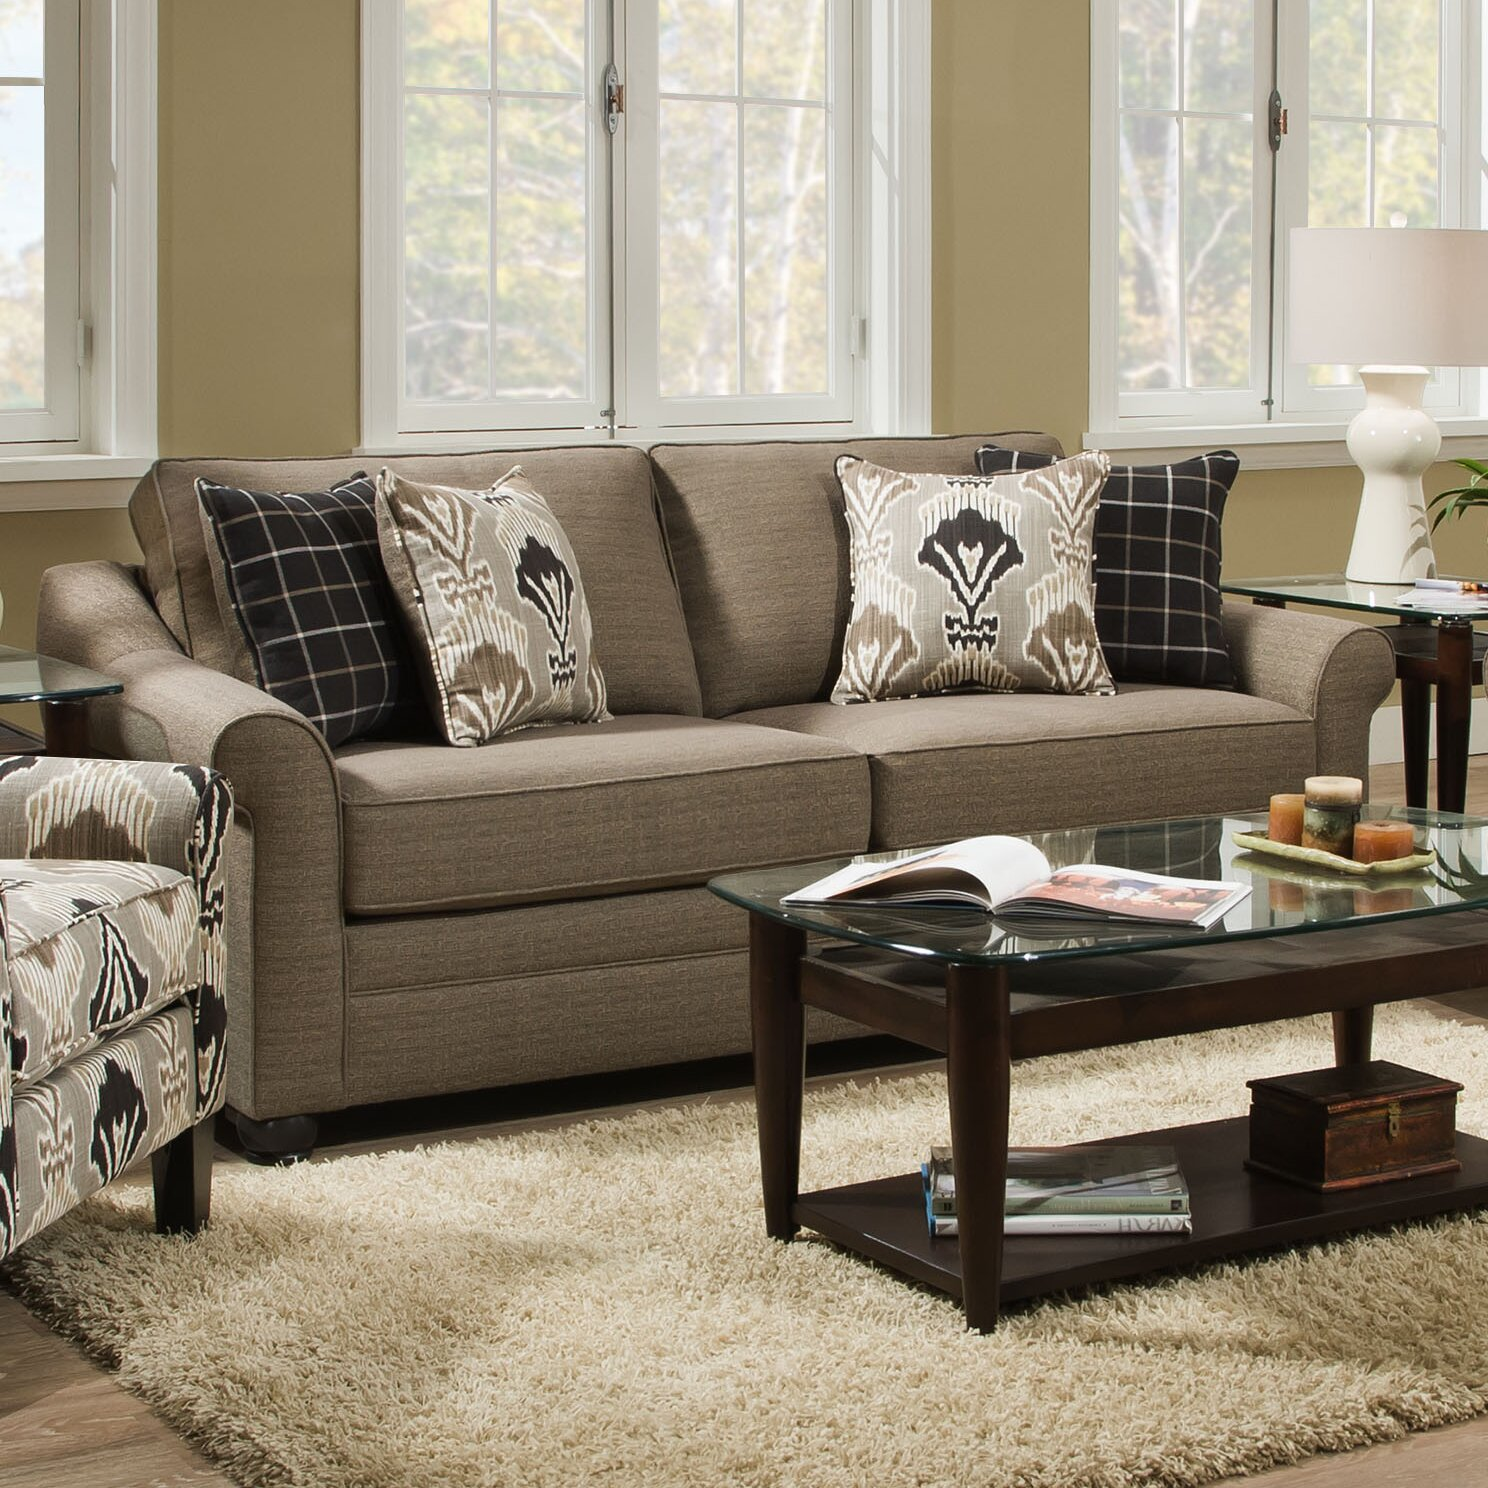 Simmons Upholstery Seguin Living Room Collection Wayfair Supply